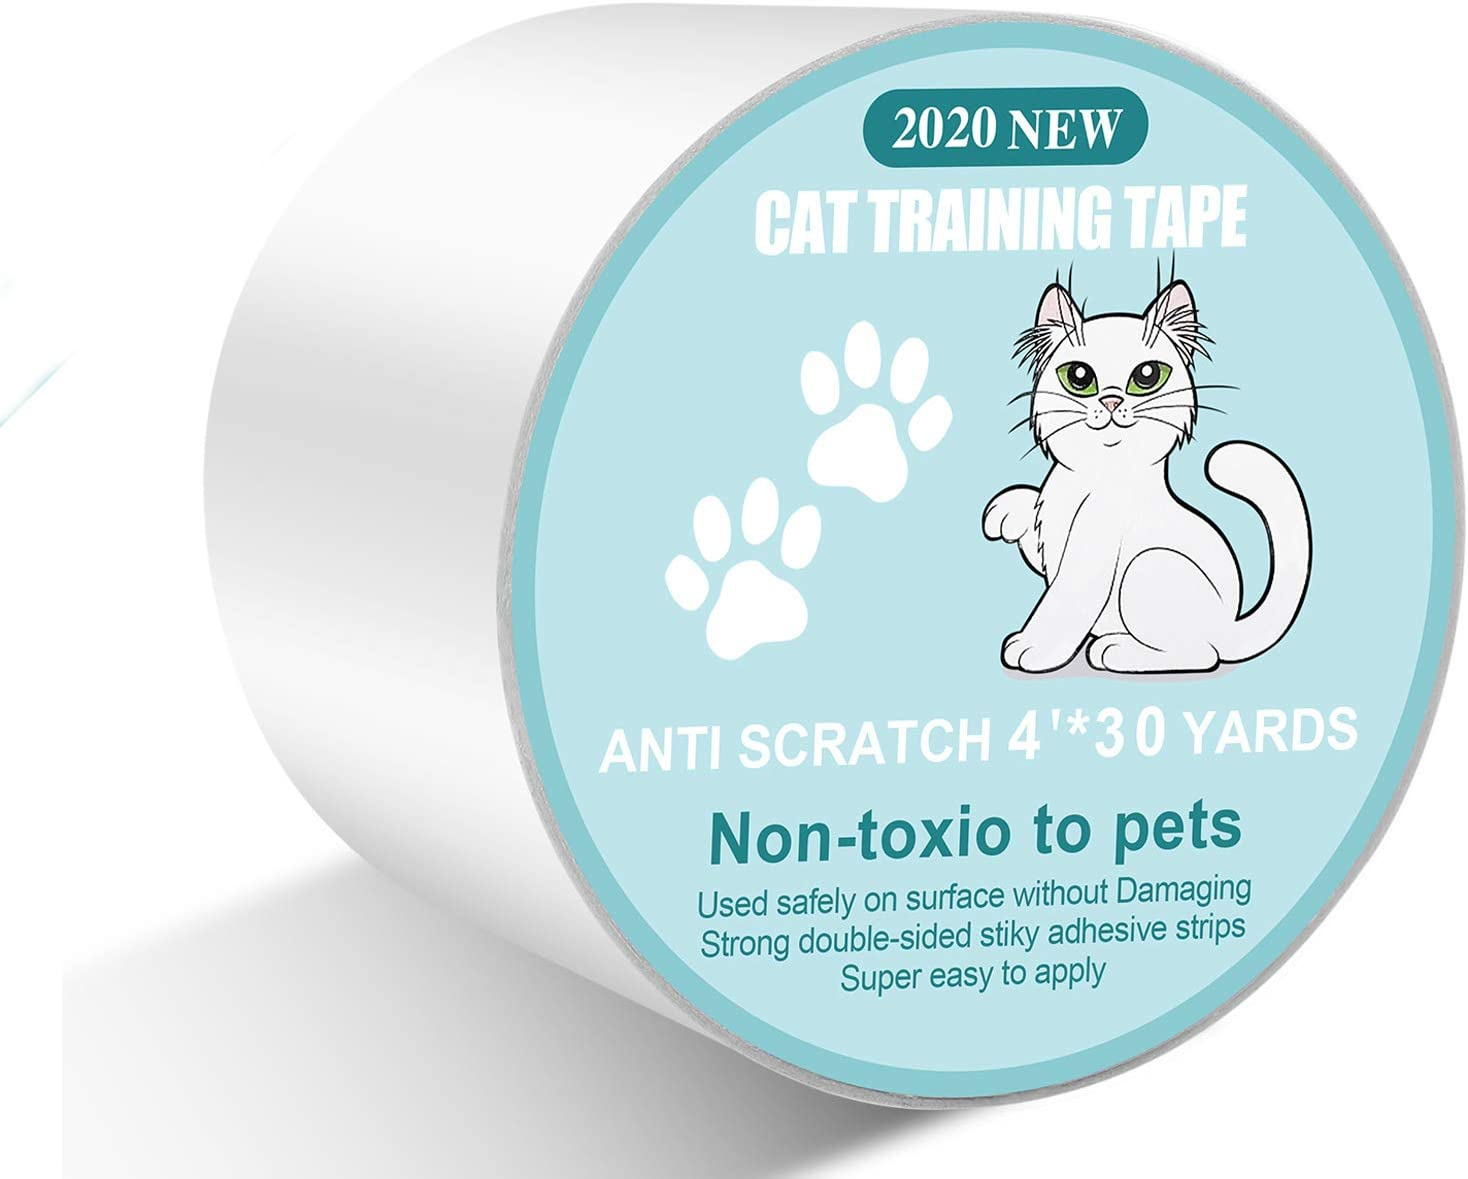 "4"" X 30 Yards Anti Cat Scratch Deterrent Tape - Sticky Paws Tape for Cats,100% Transparent cat Double Sided Tape,Cat Training Tape Furniture Protectors for Couch,Sofa,Door"